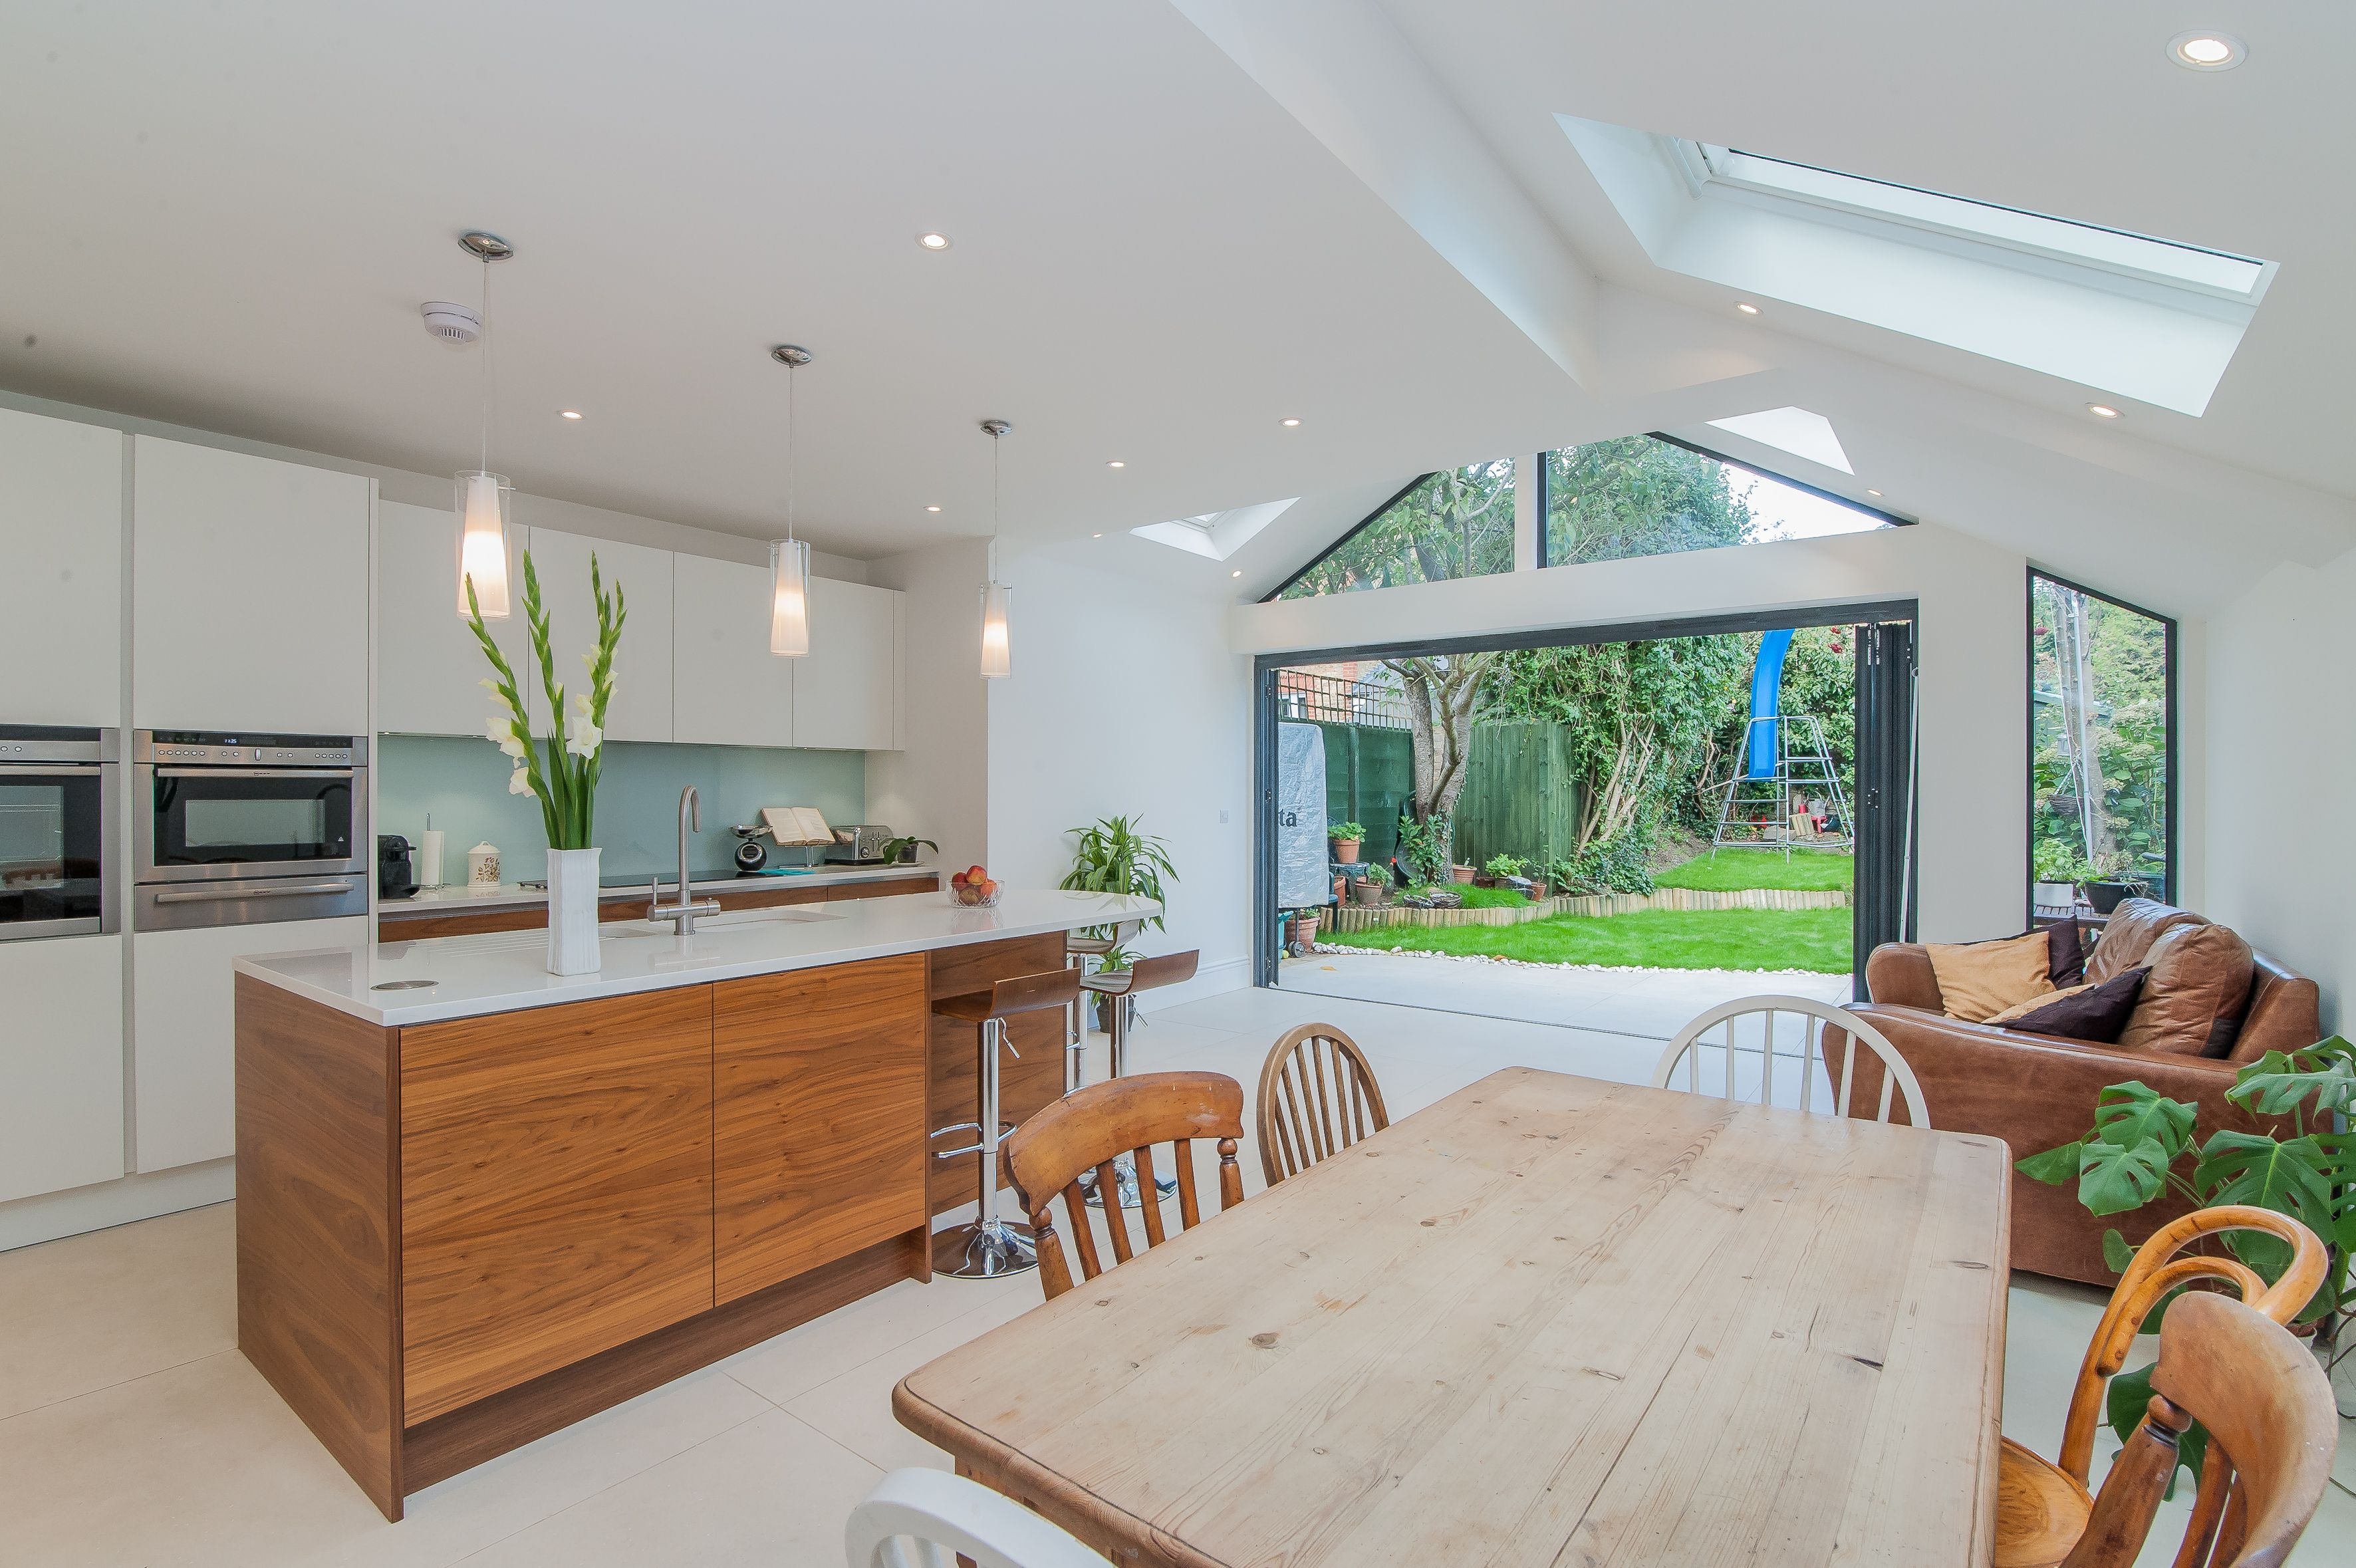 Long kitchen tables  White and Wood kitchen extension  Extension  Pinterest  Norman